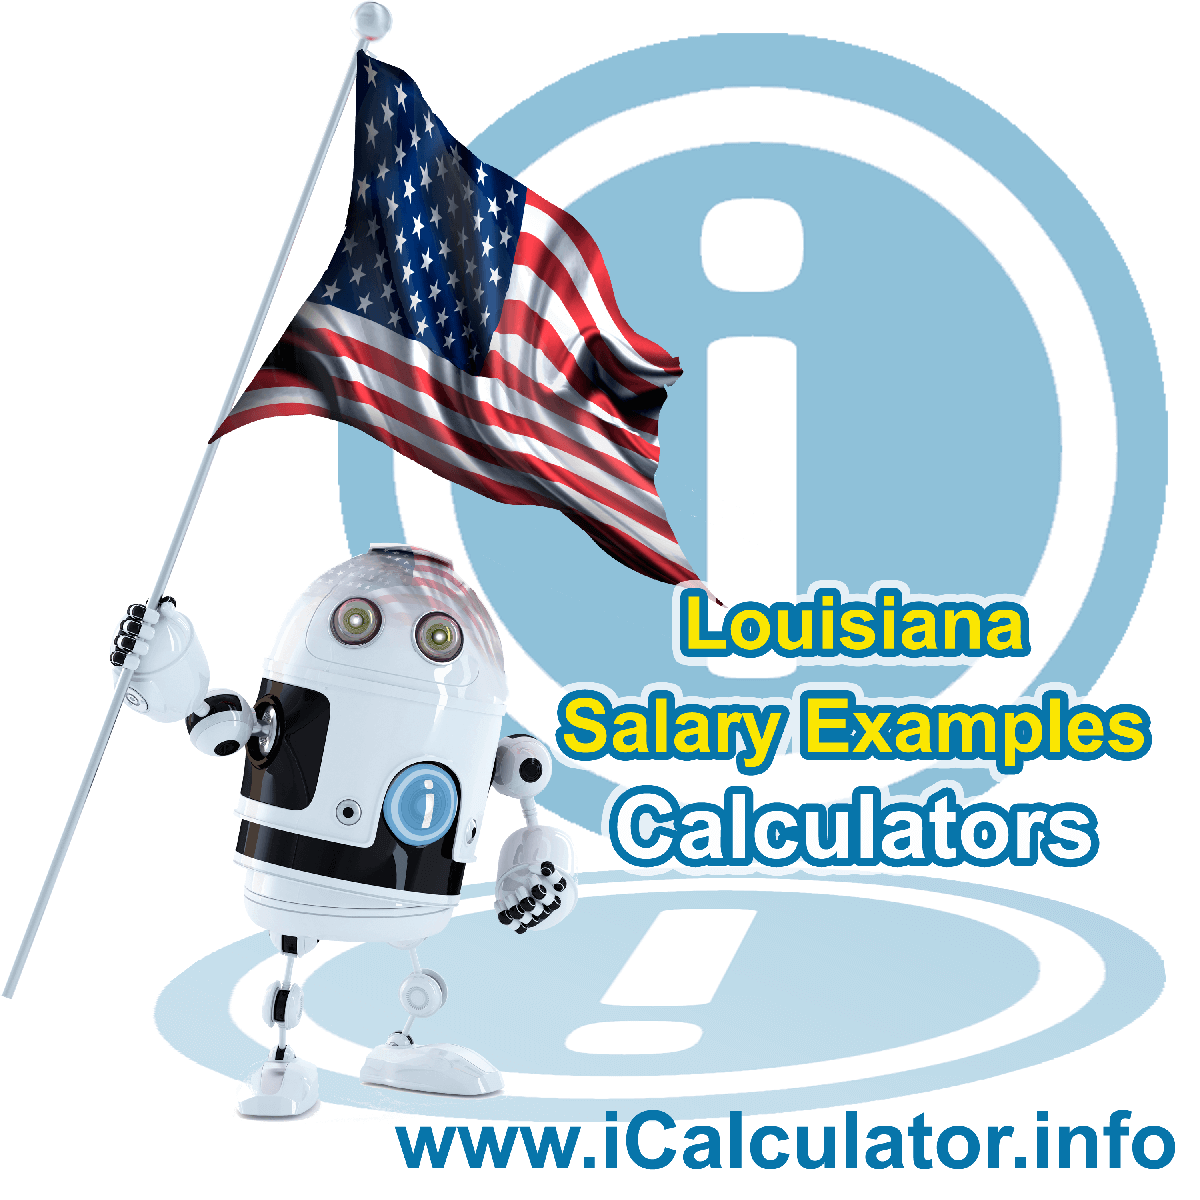 Louisiana Salary Example for $190.00 in 2020 | iCalculator | $190.00 salary example for employee and employer paying Louisiana State tincome taxes. Detailed salary after tax calculation including Louisiana State Tax, Federal State Tax, Medicare Deductions, Social Security, Capital Gains and other income tax and salary deductions complete with supporting Louisiana state tax tables